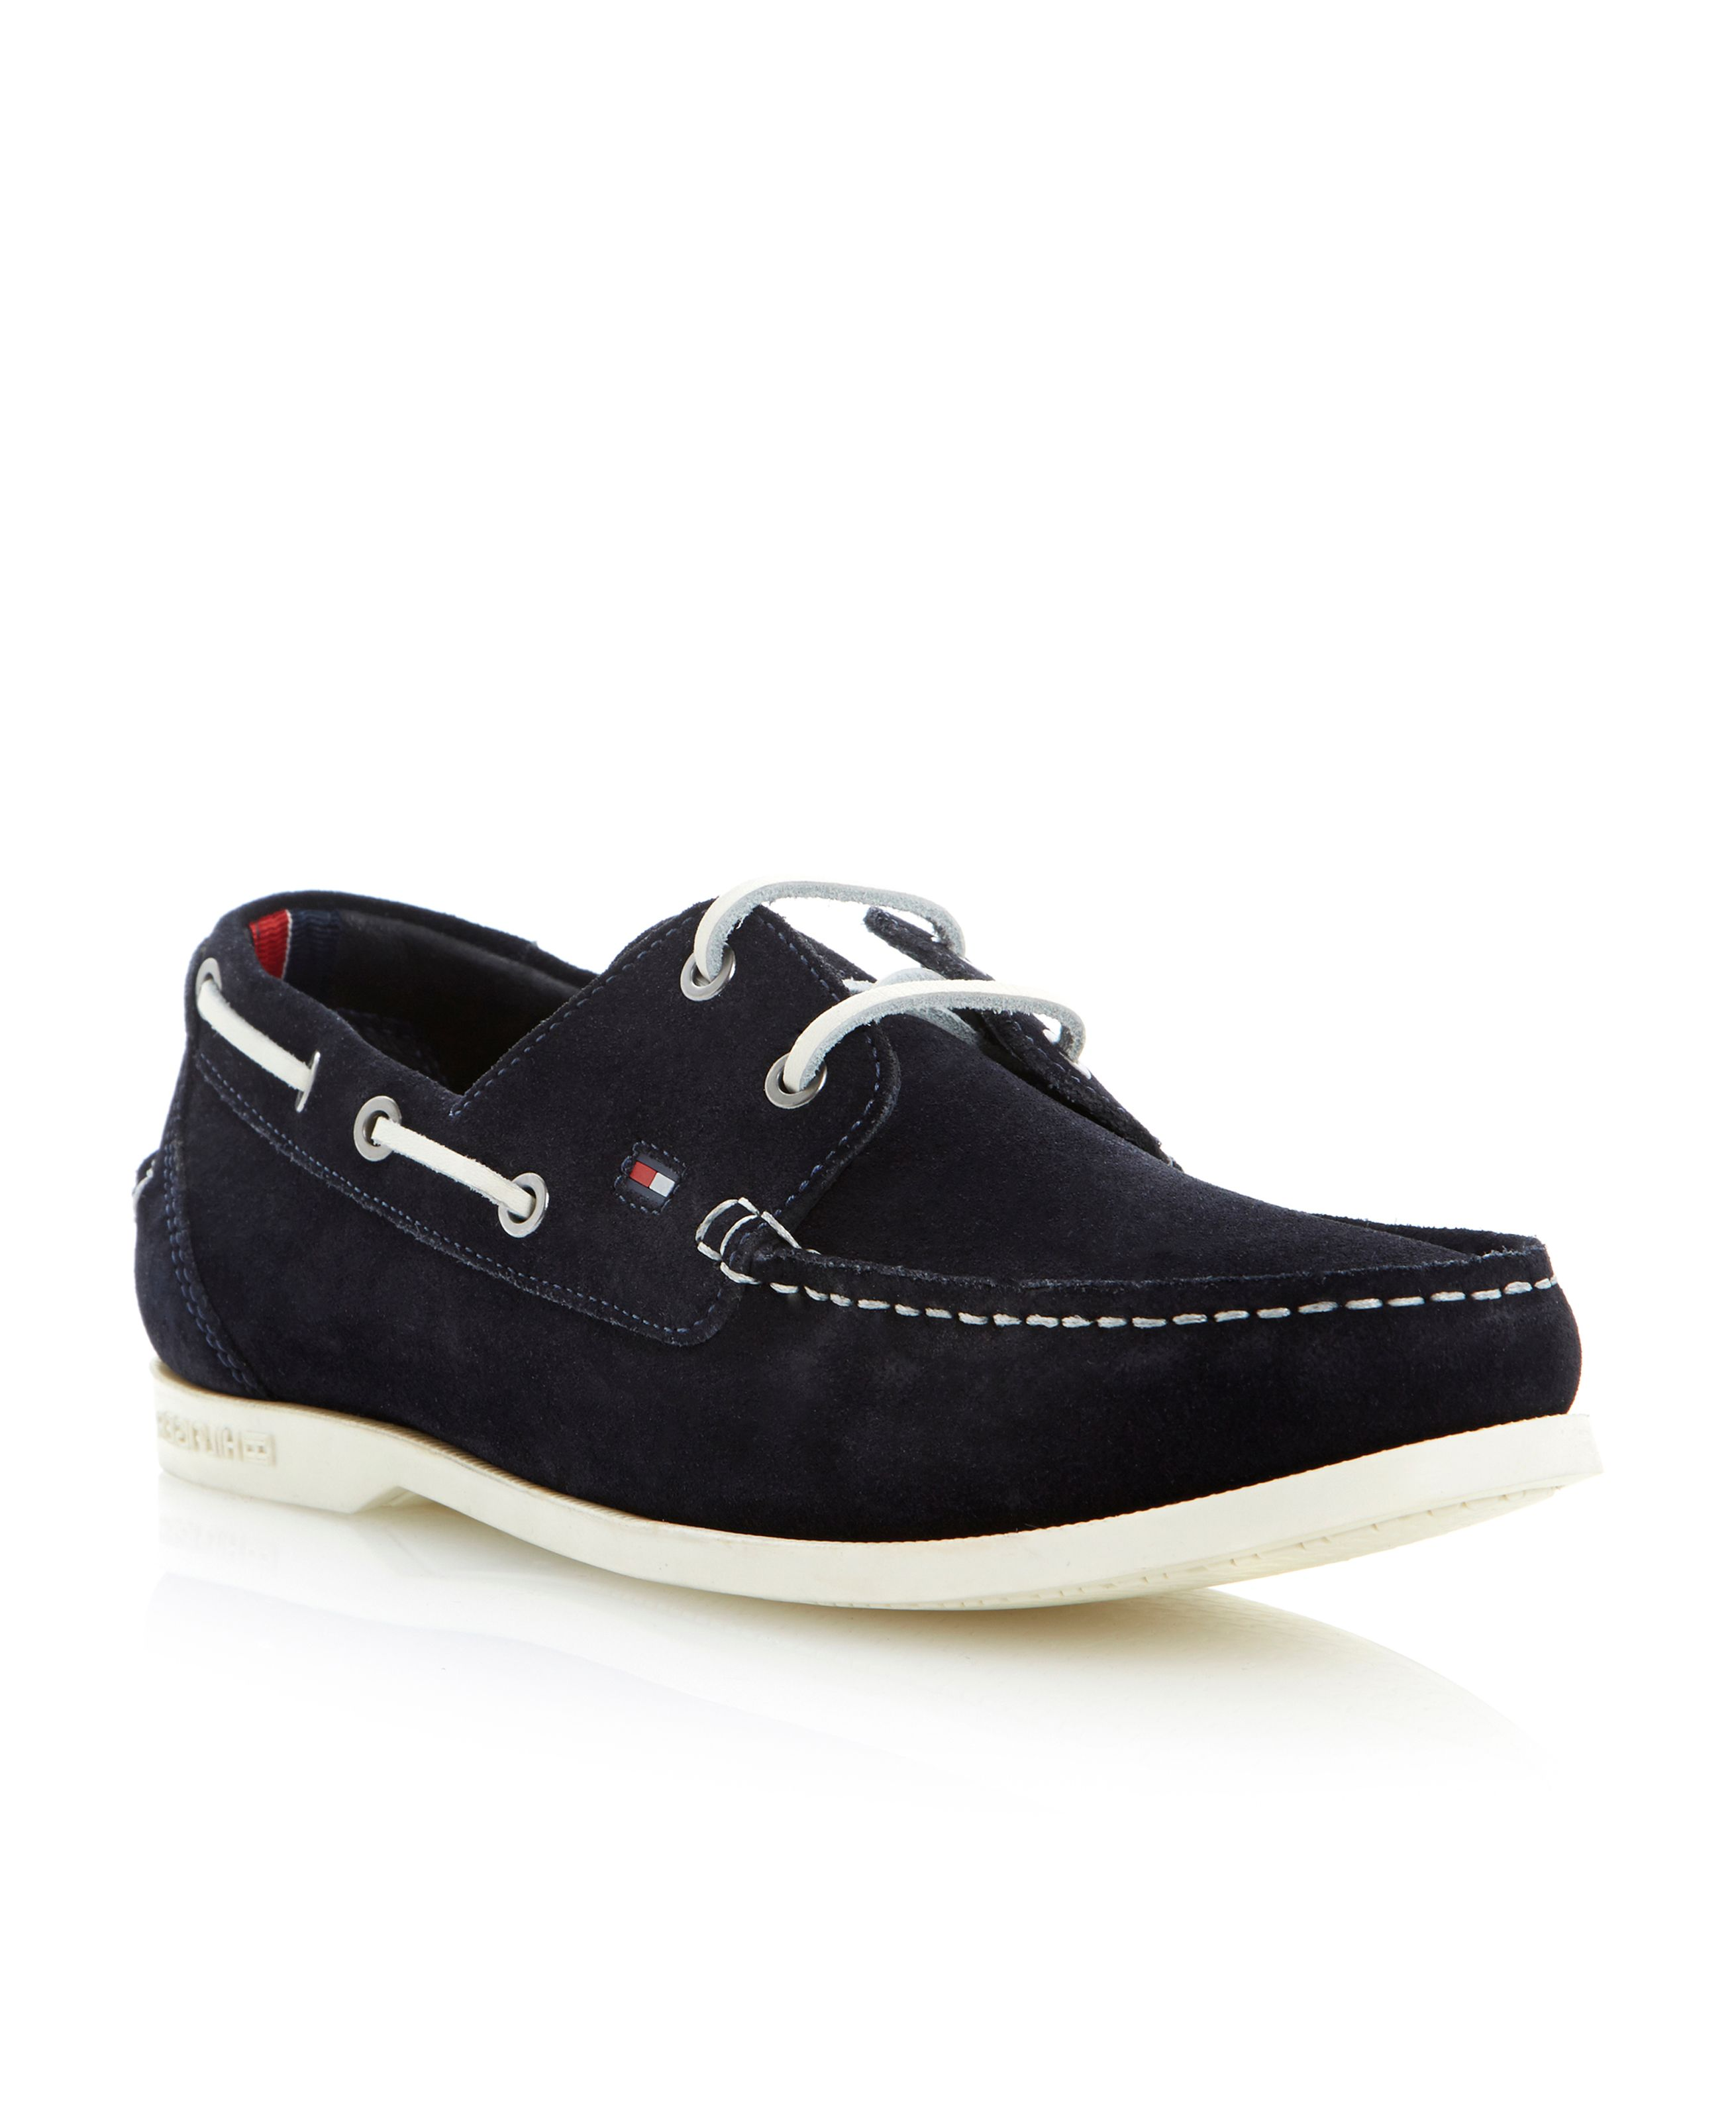 Chino 9b lace up white sole boat shoes